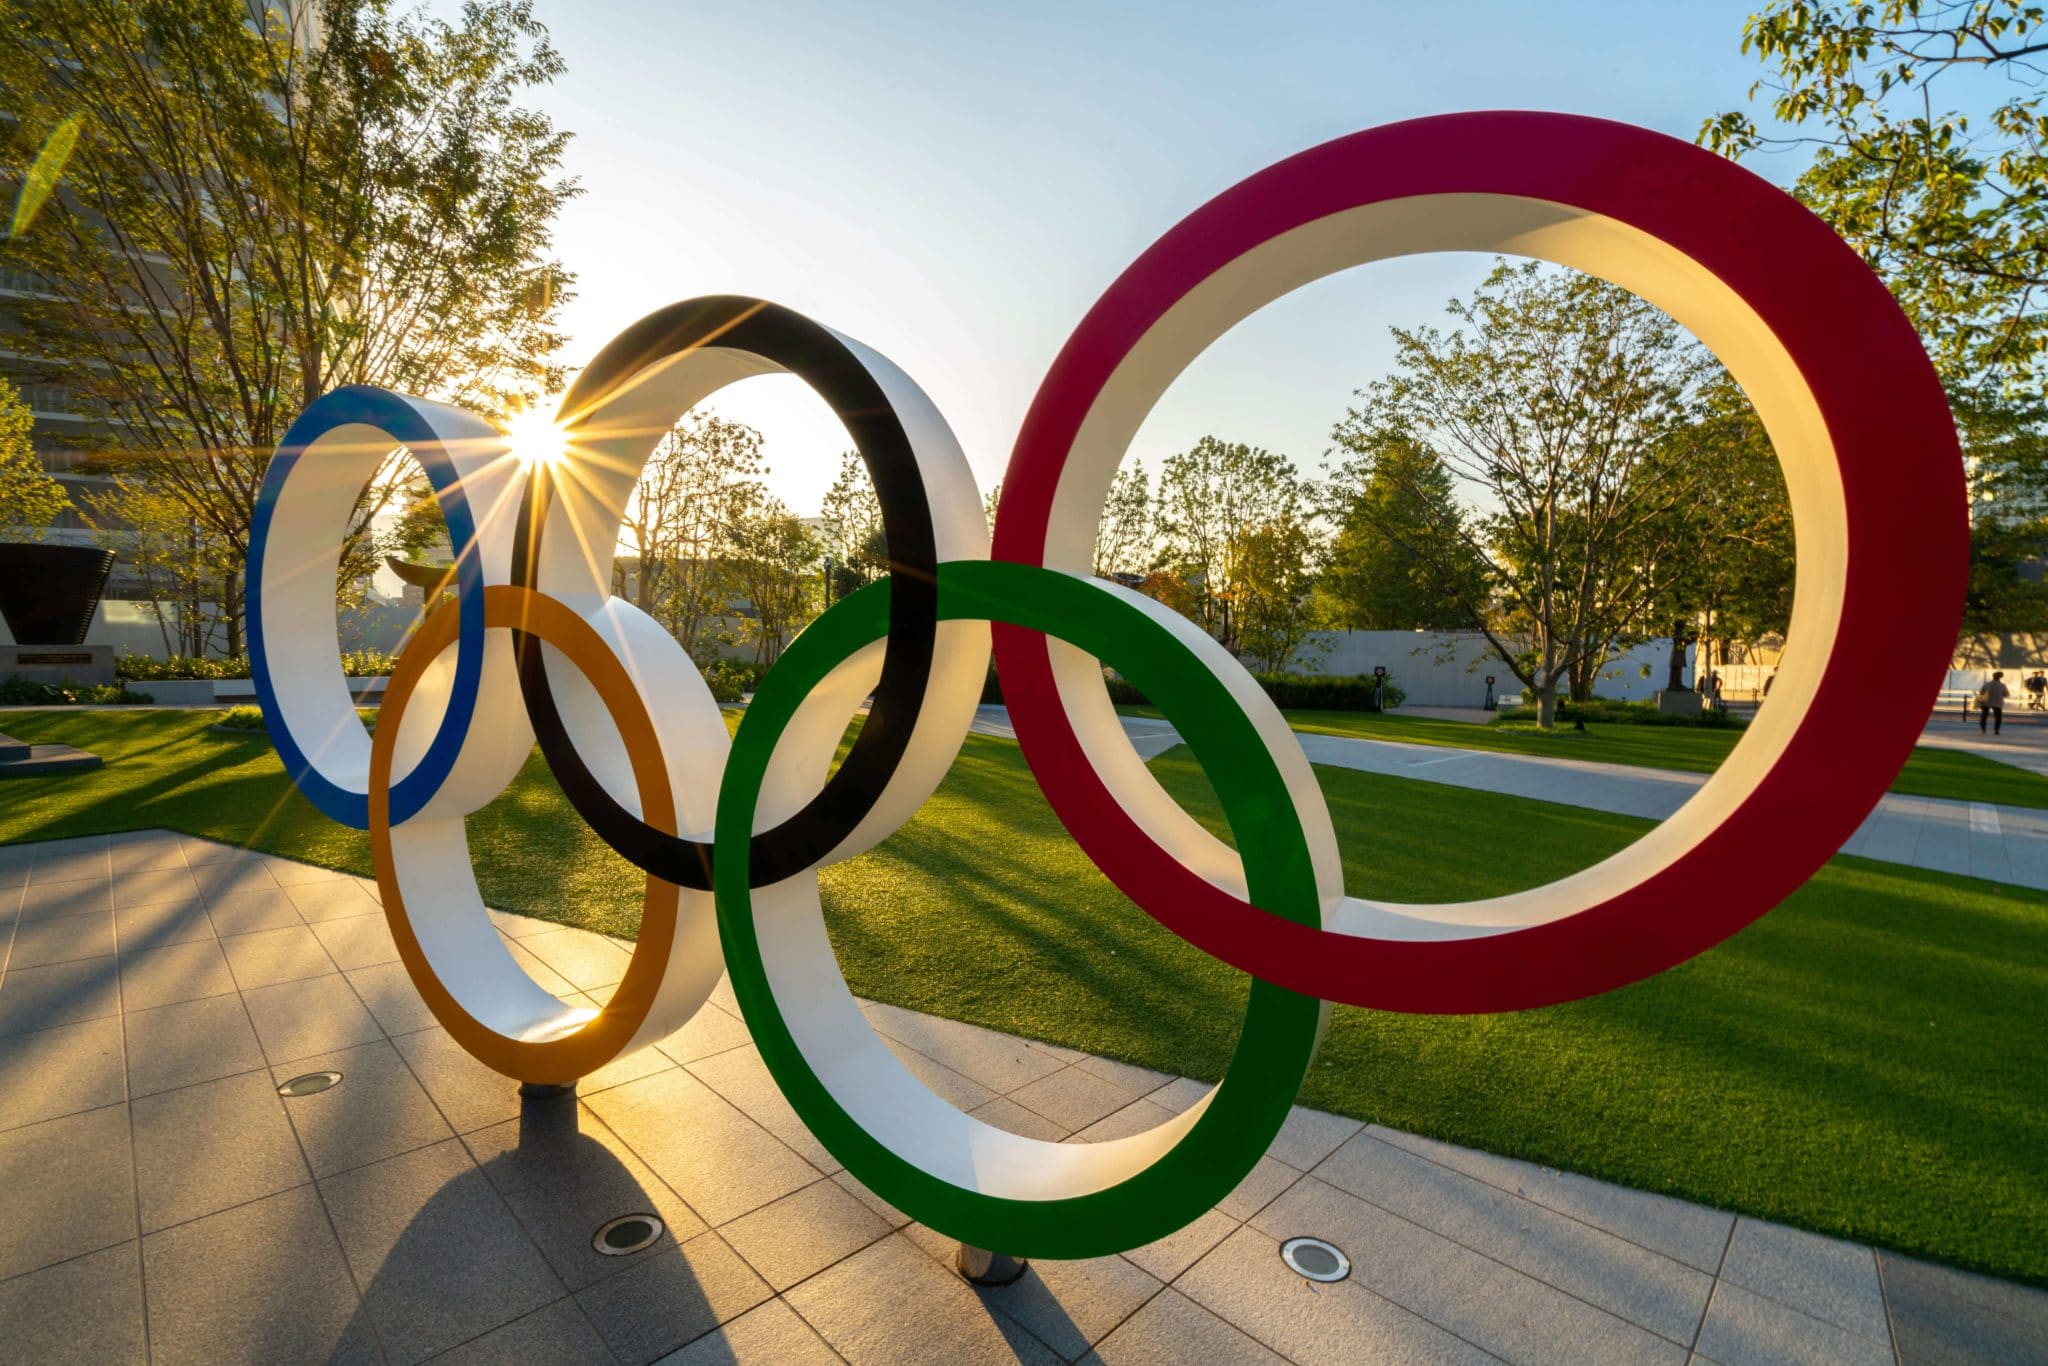 PARENTING REQUIRES OLYMPIAN THINKING